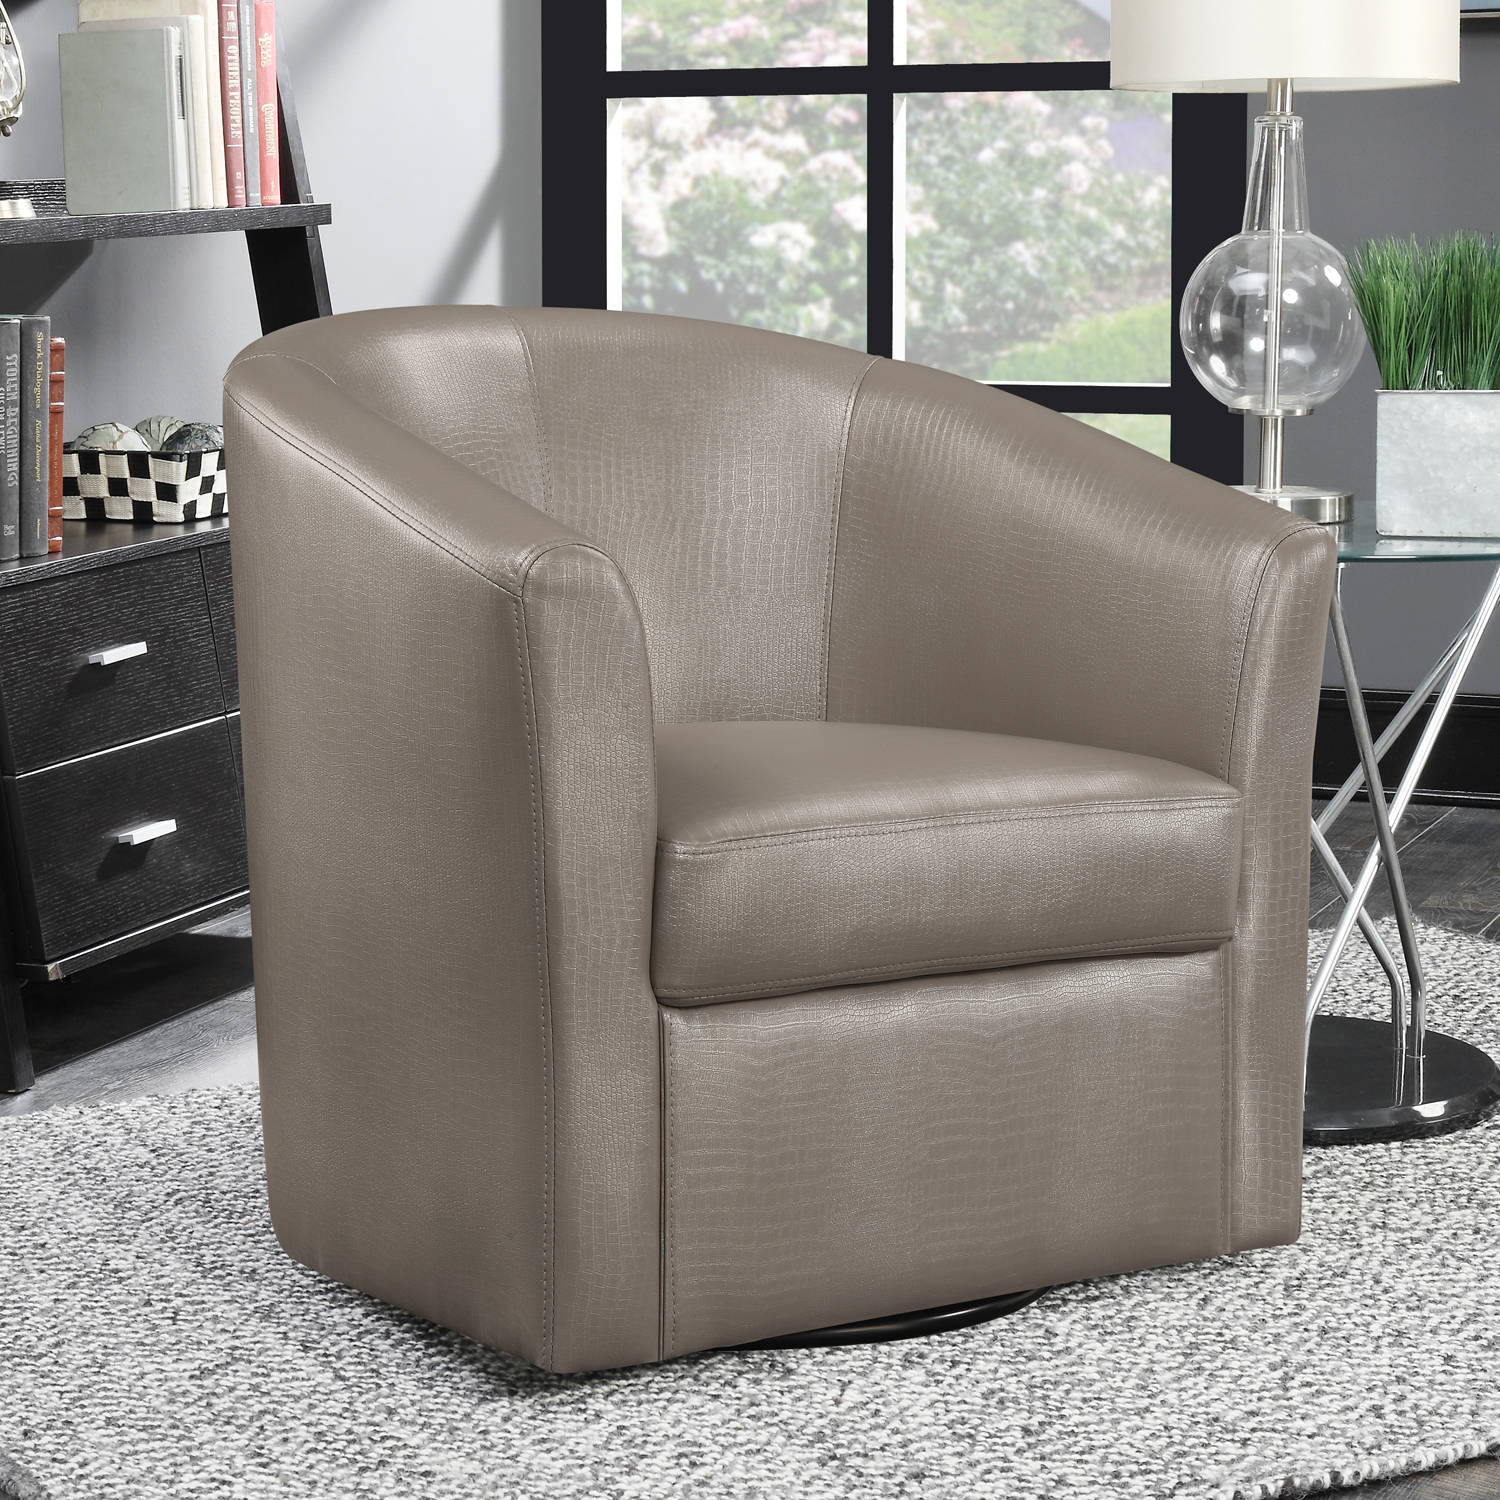 Coaster Company Accent Chair, Champagne